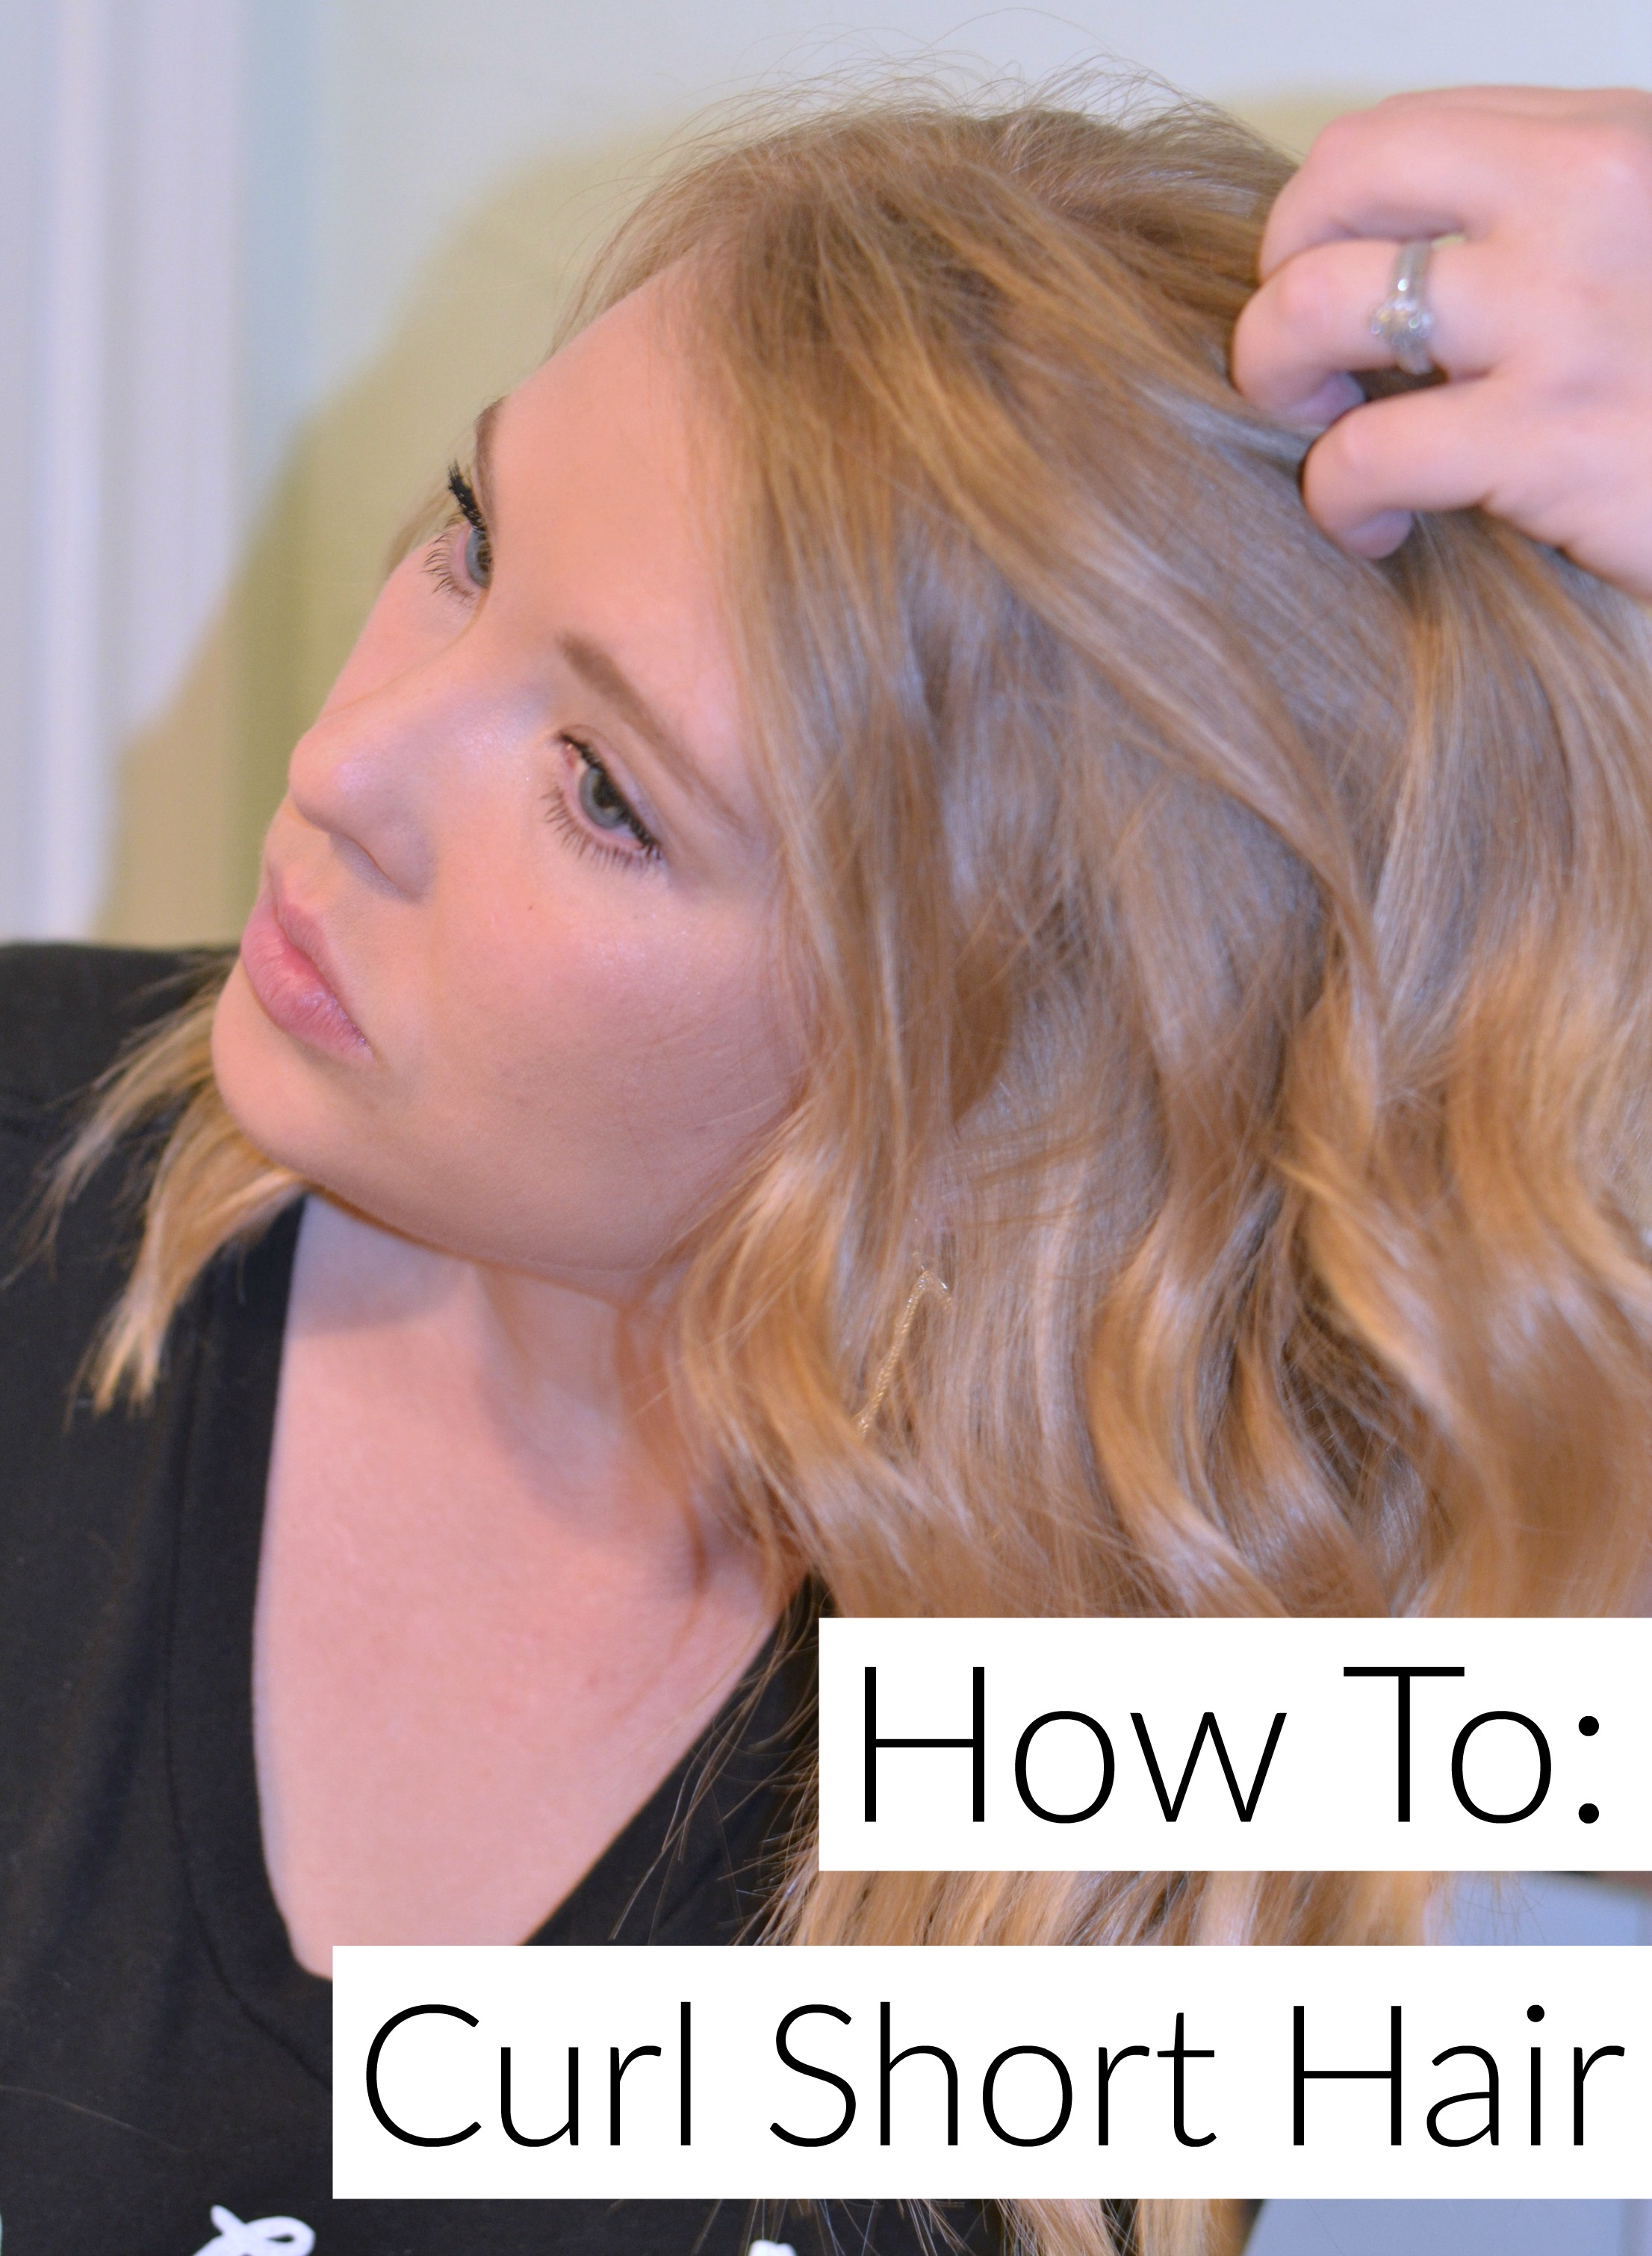 How to Curl Short Hair- This tutorial is simple and very easy to follow.